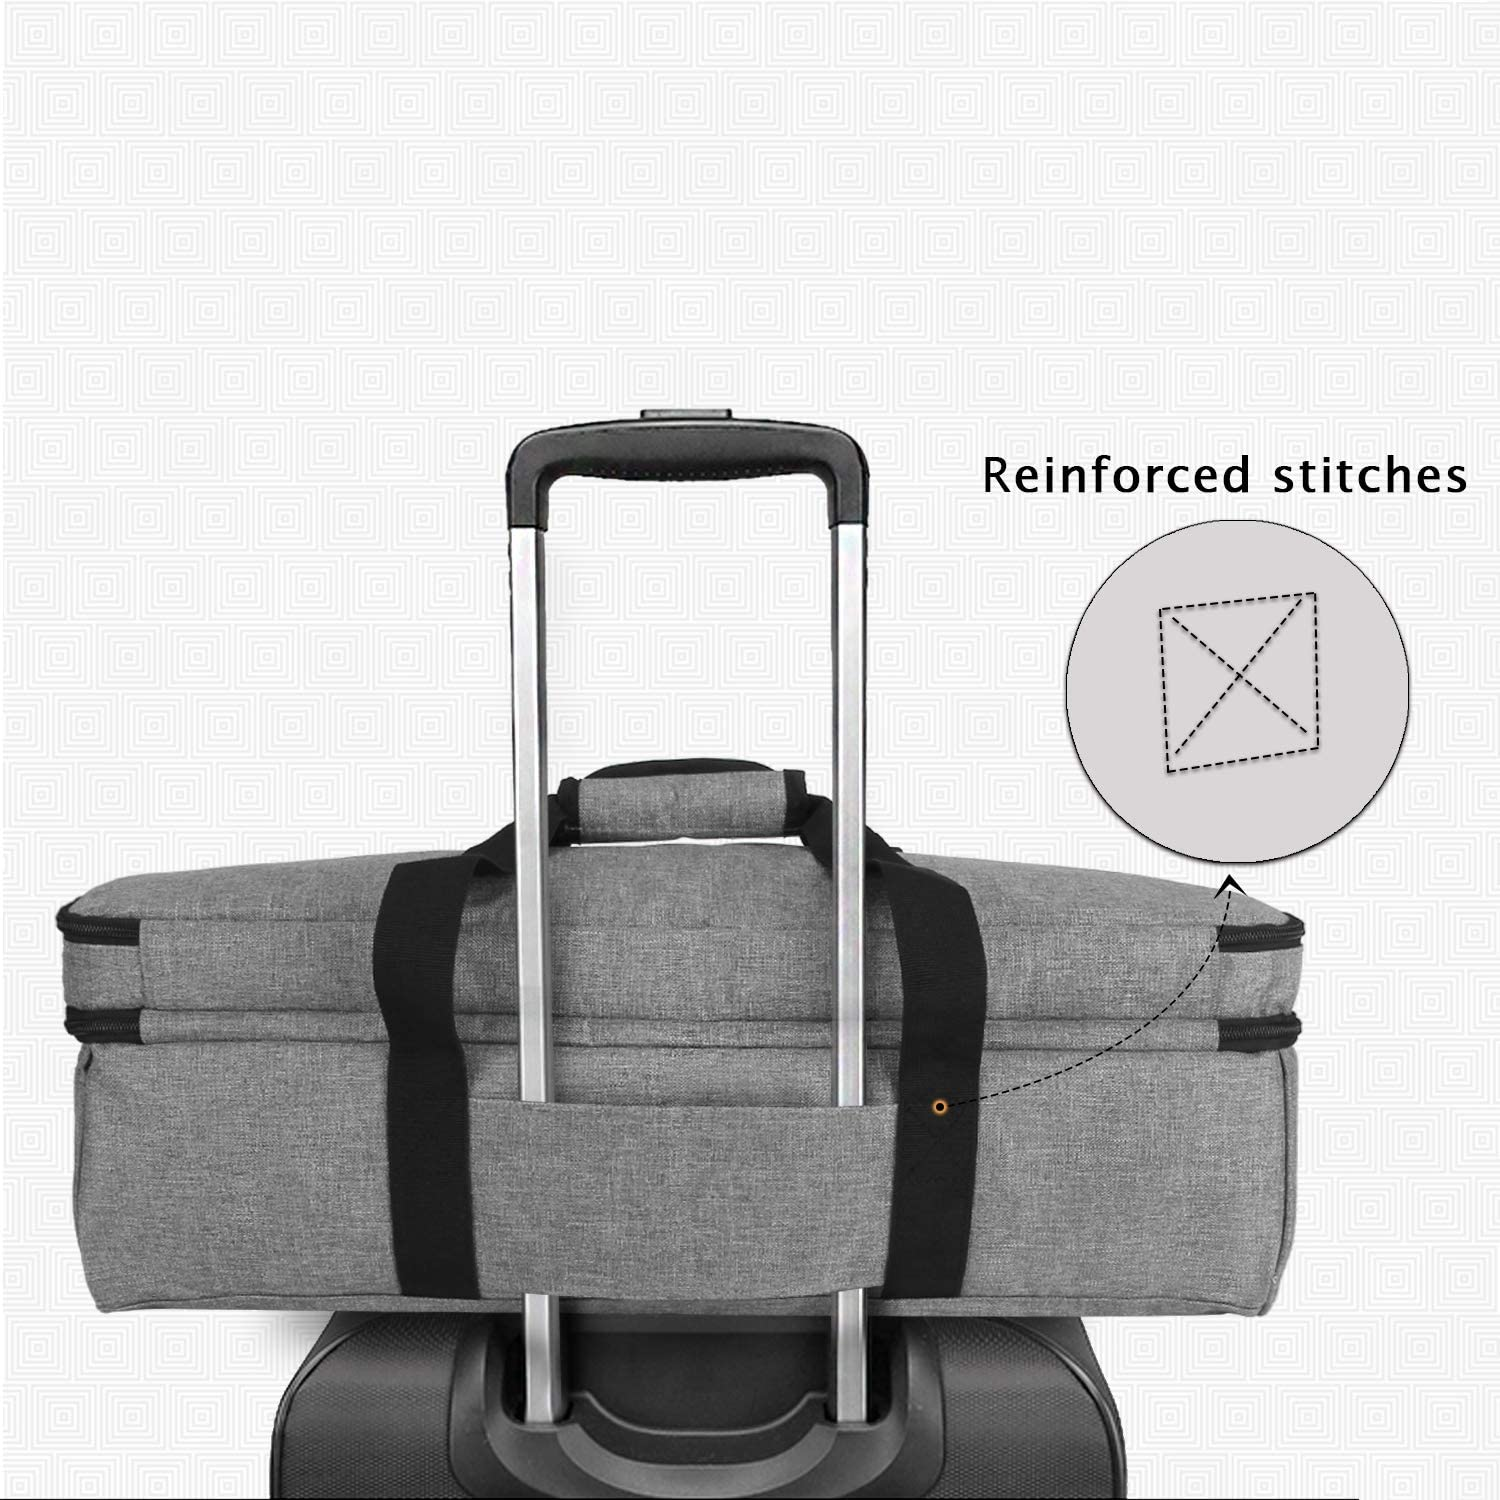 Bag Only and Cameo 3 Cricut Explore Air Air2 Luxja Carrying Bag for Cutting Machine and Supplies Grey Tote Bag for Cricut Maker Fit for Brother ScanNCut CM300, CM600, CM700, CM900